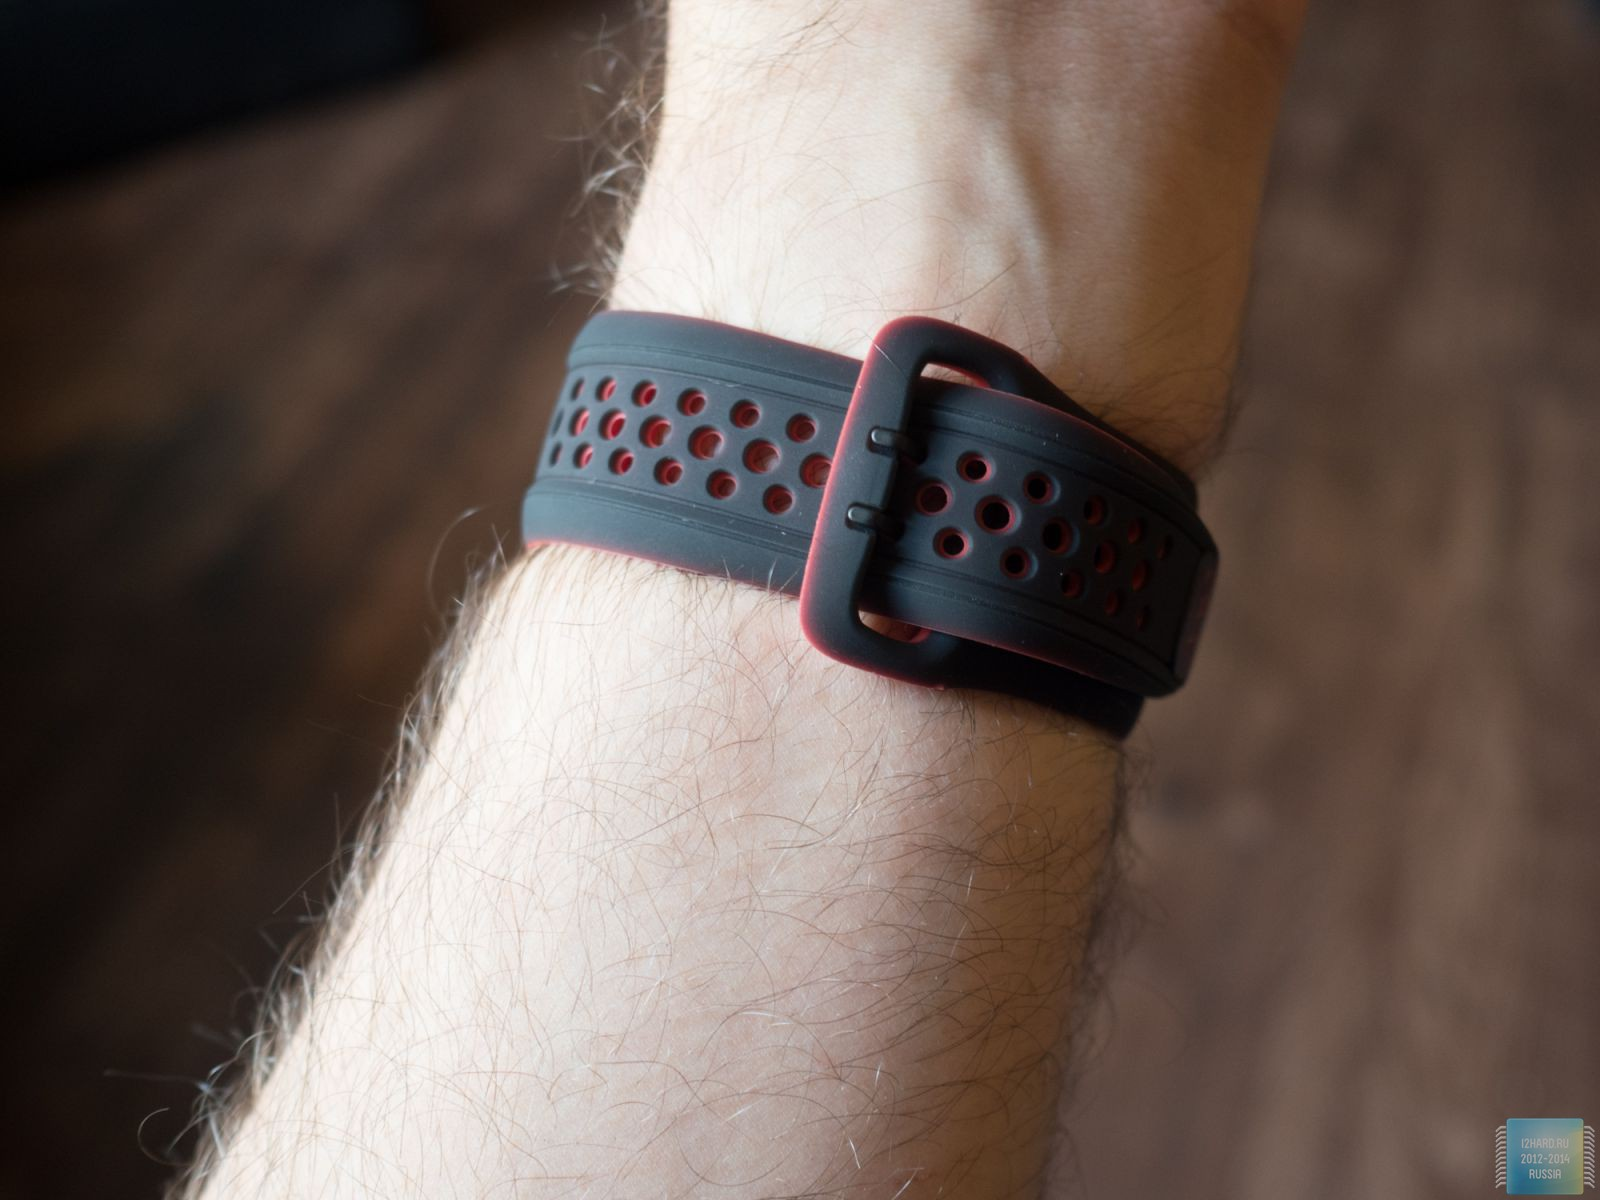 Overview of MIO Slice  Fitness tracker with new technology